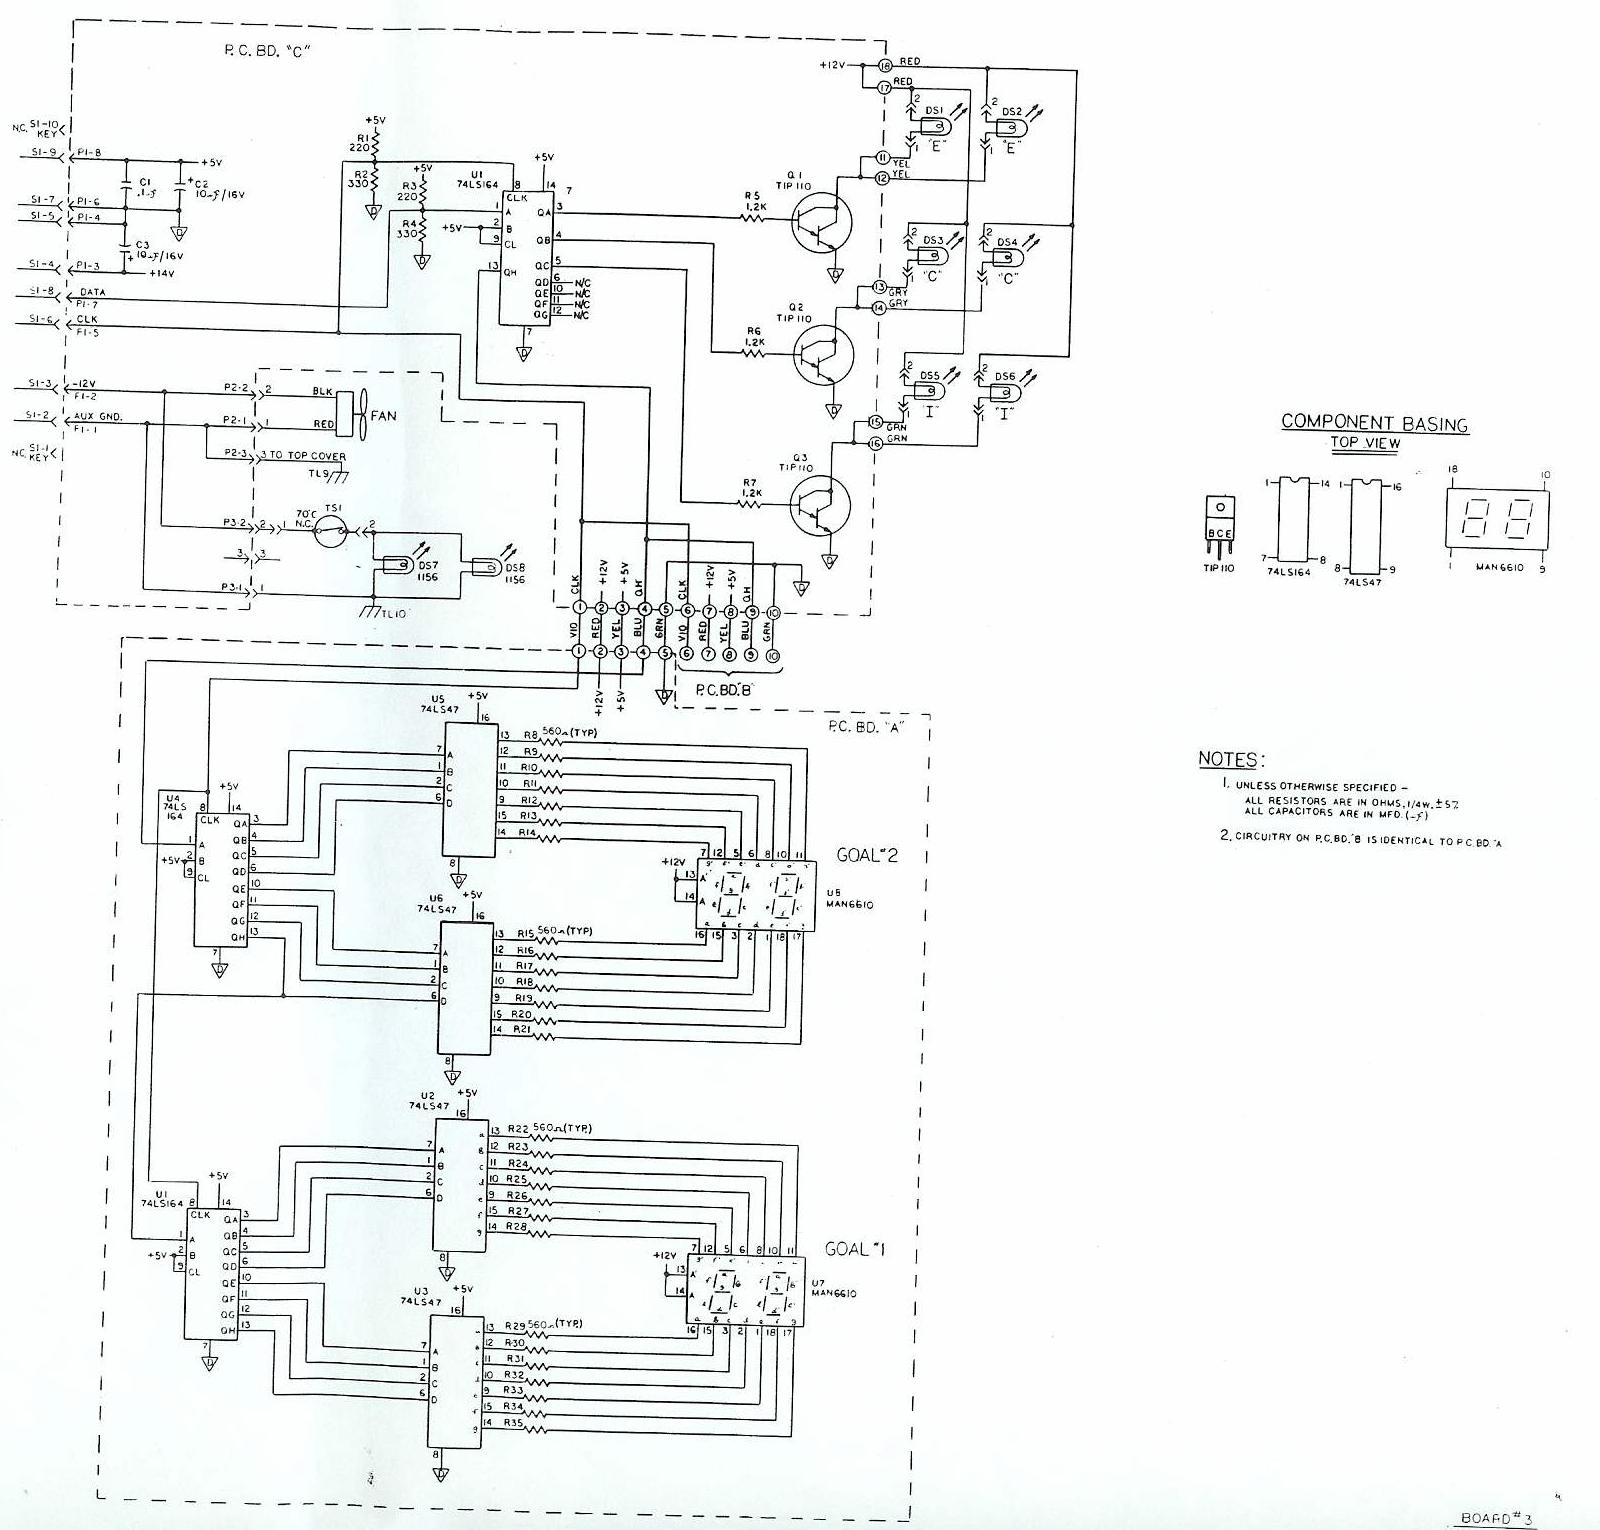 Chexx Hockey Super Ice Domed Bubble History Arcade Game Wiring Diagram Part6 Good Luck Getting Those Schematics From